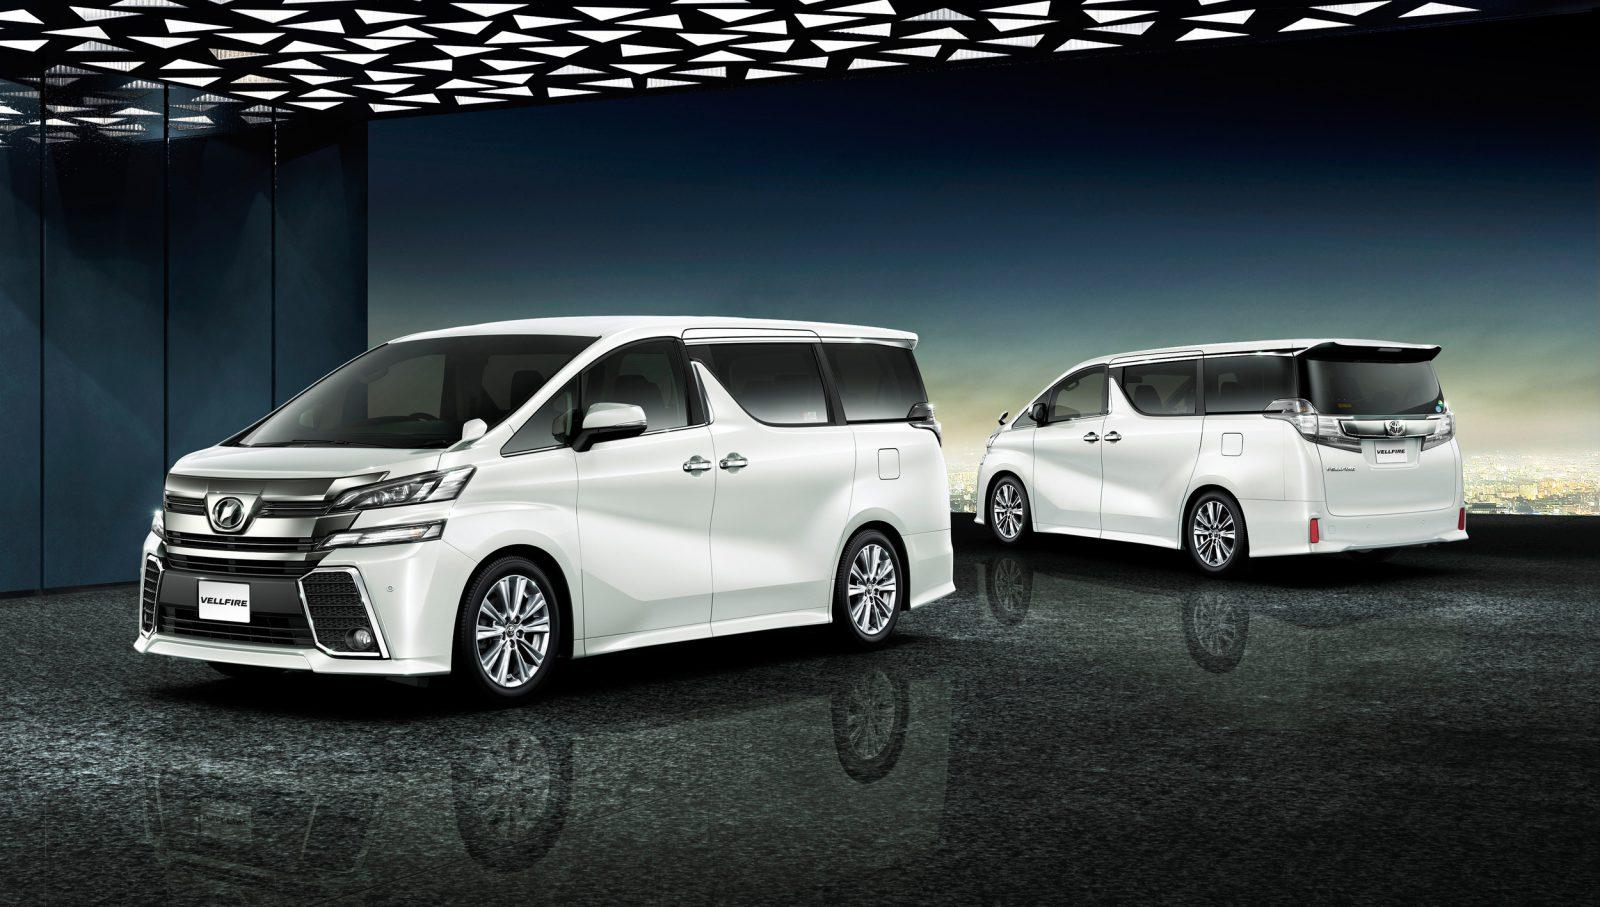 Nissan Elgrand Vs Toyota Vellfire Comparison Car From Japan